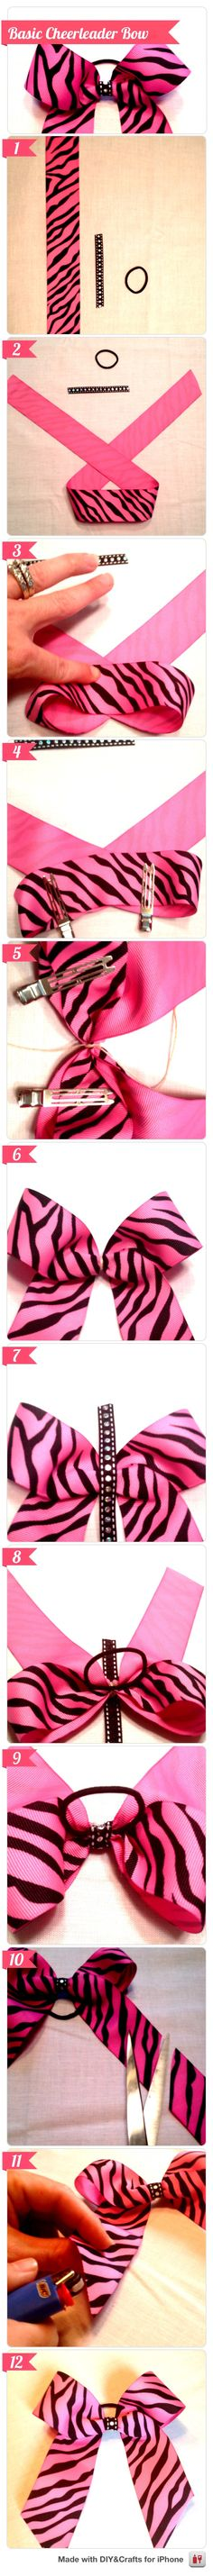 Basic Cheer Bow